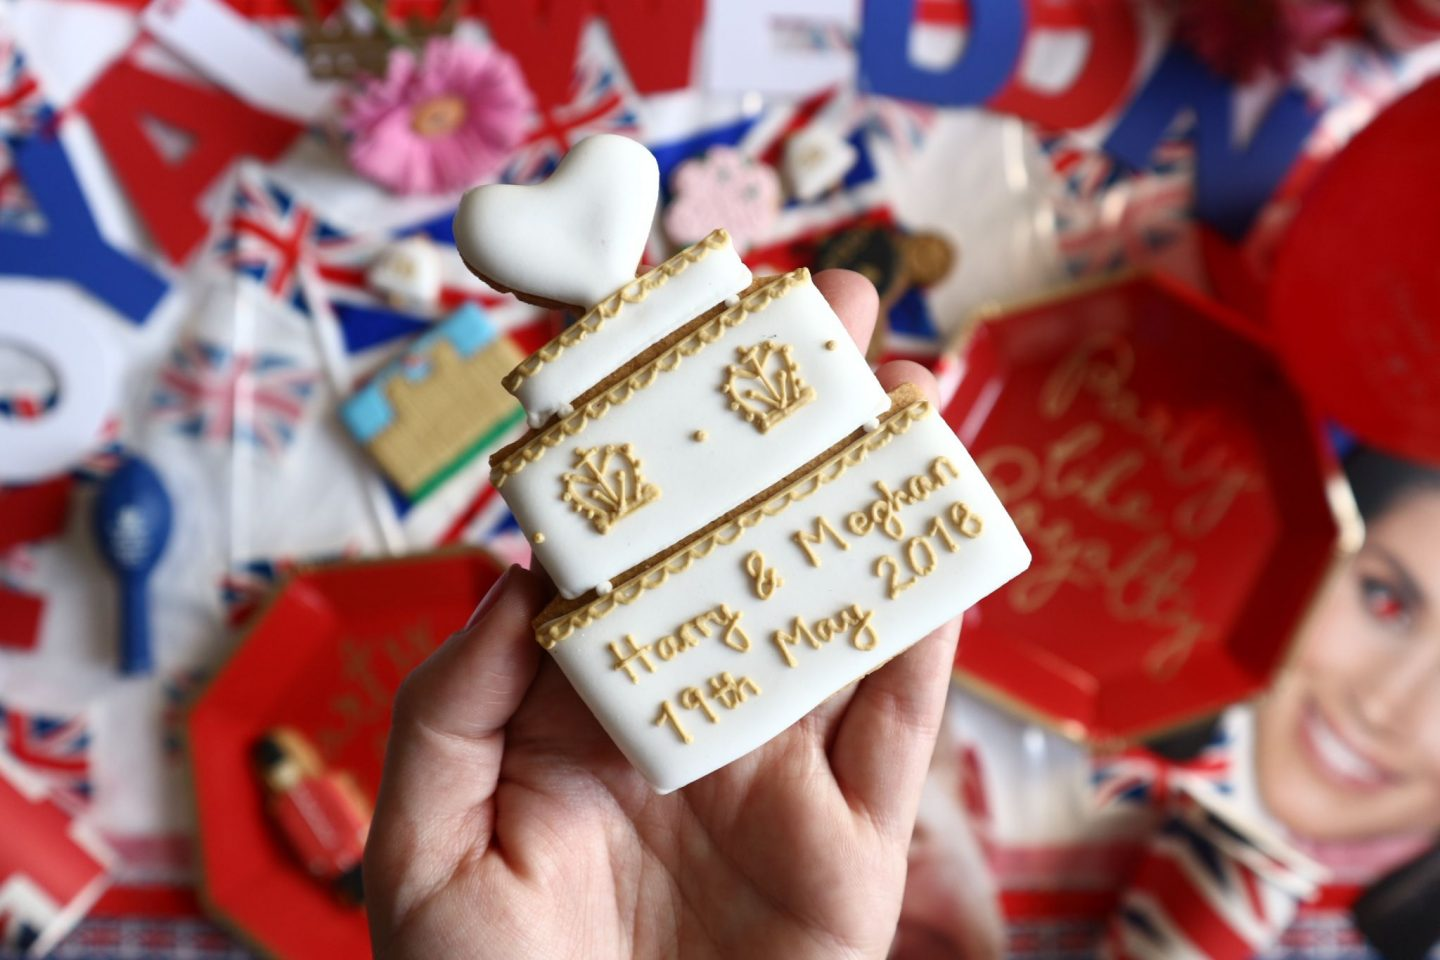 Royal Wedding Party Ideas and Preparations